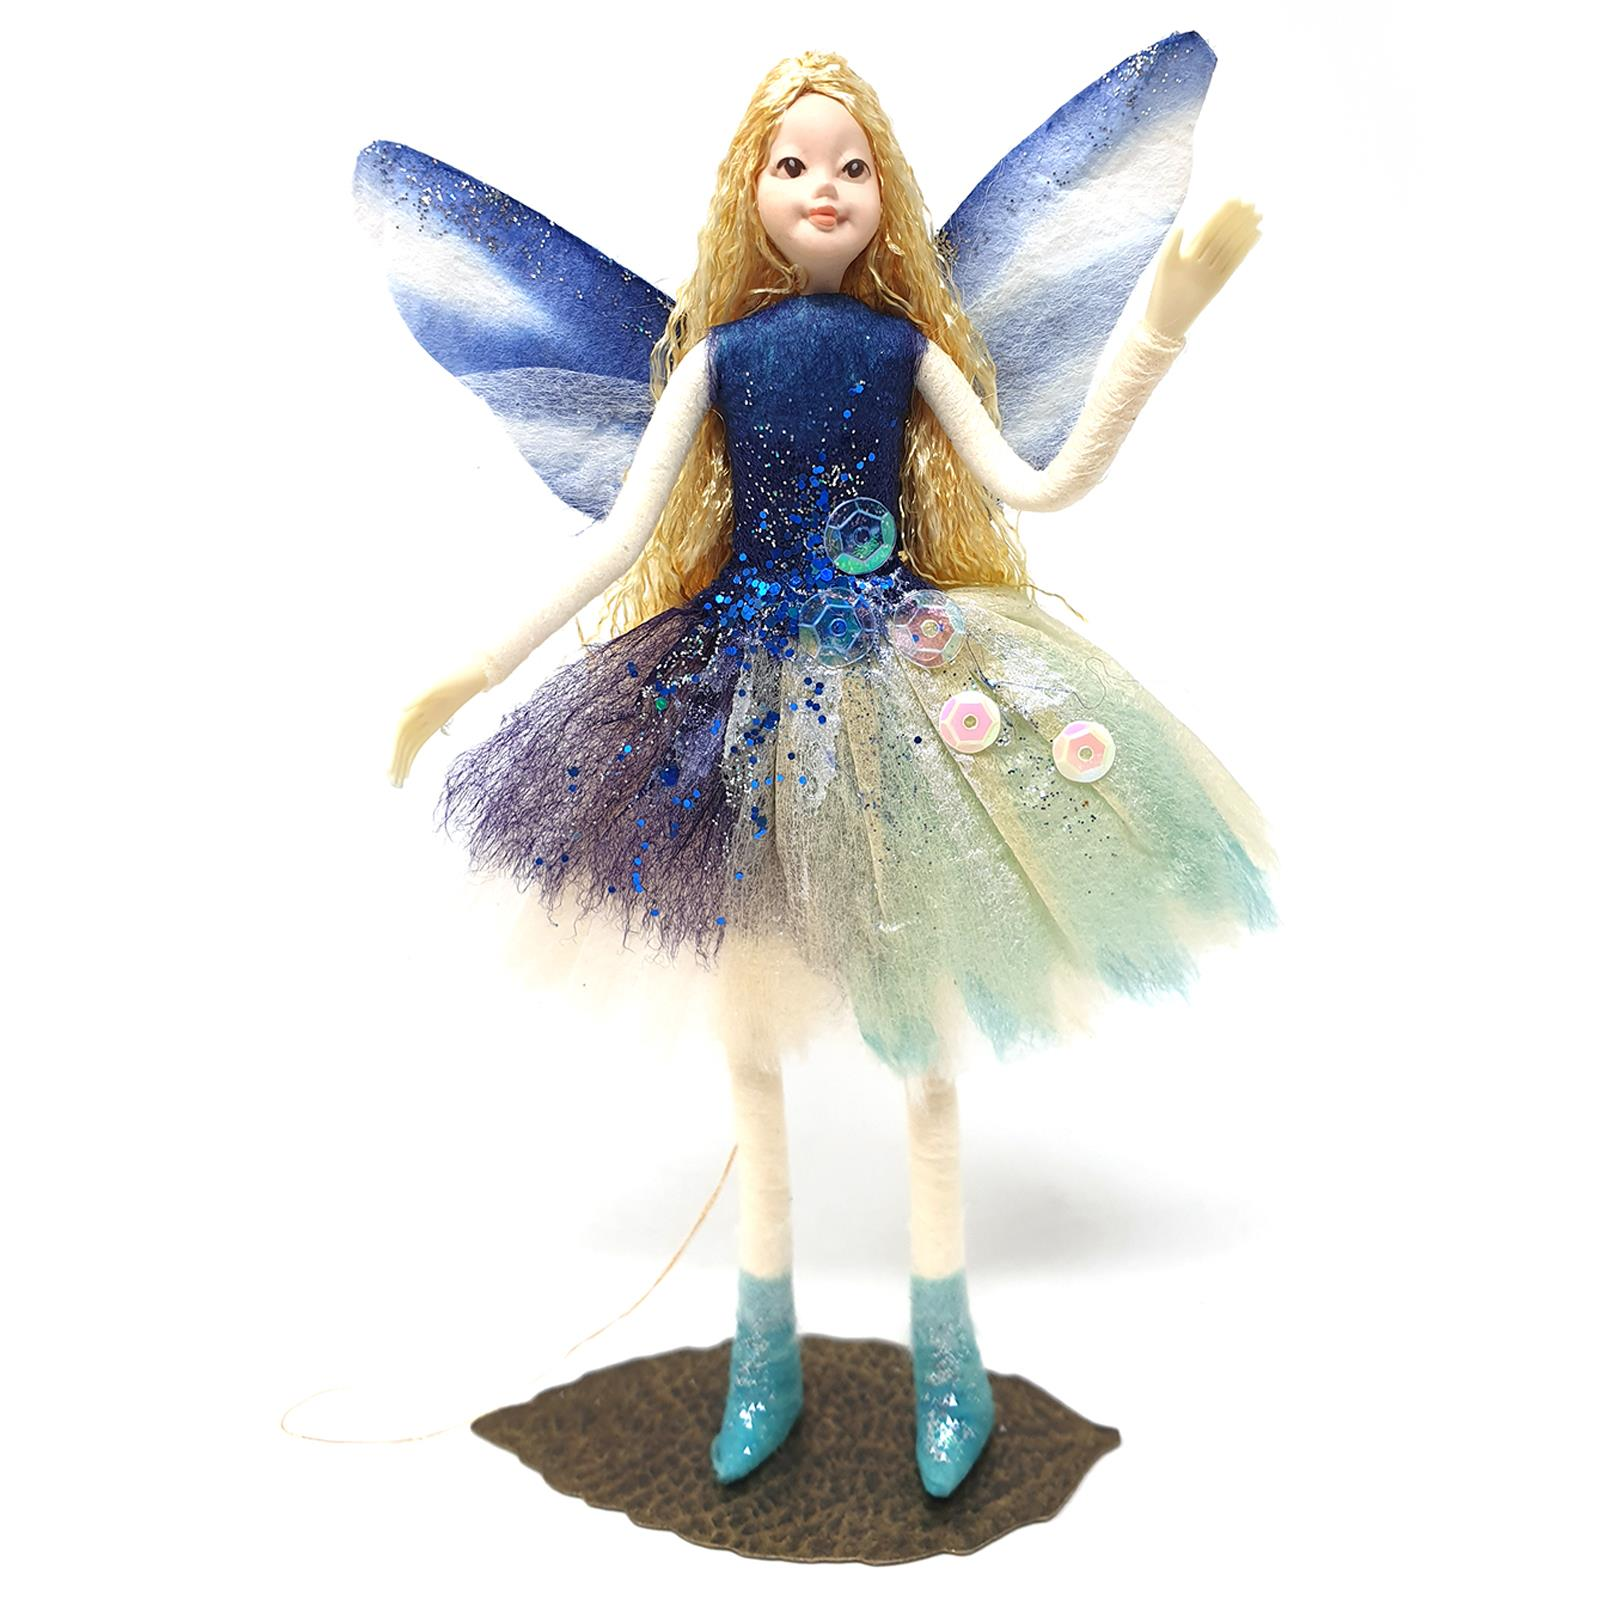 The-Fairy-Family-Collectable-Ornament-Mermaid-Forest-Fairies-Elf-Figurines-Gift thumbnail 30